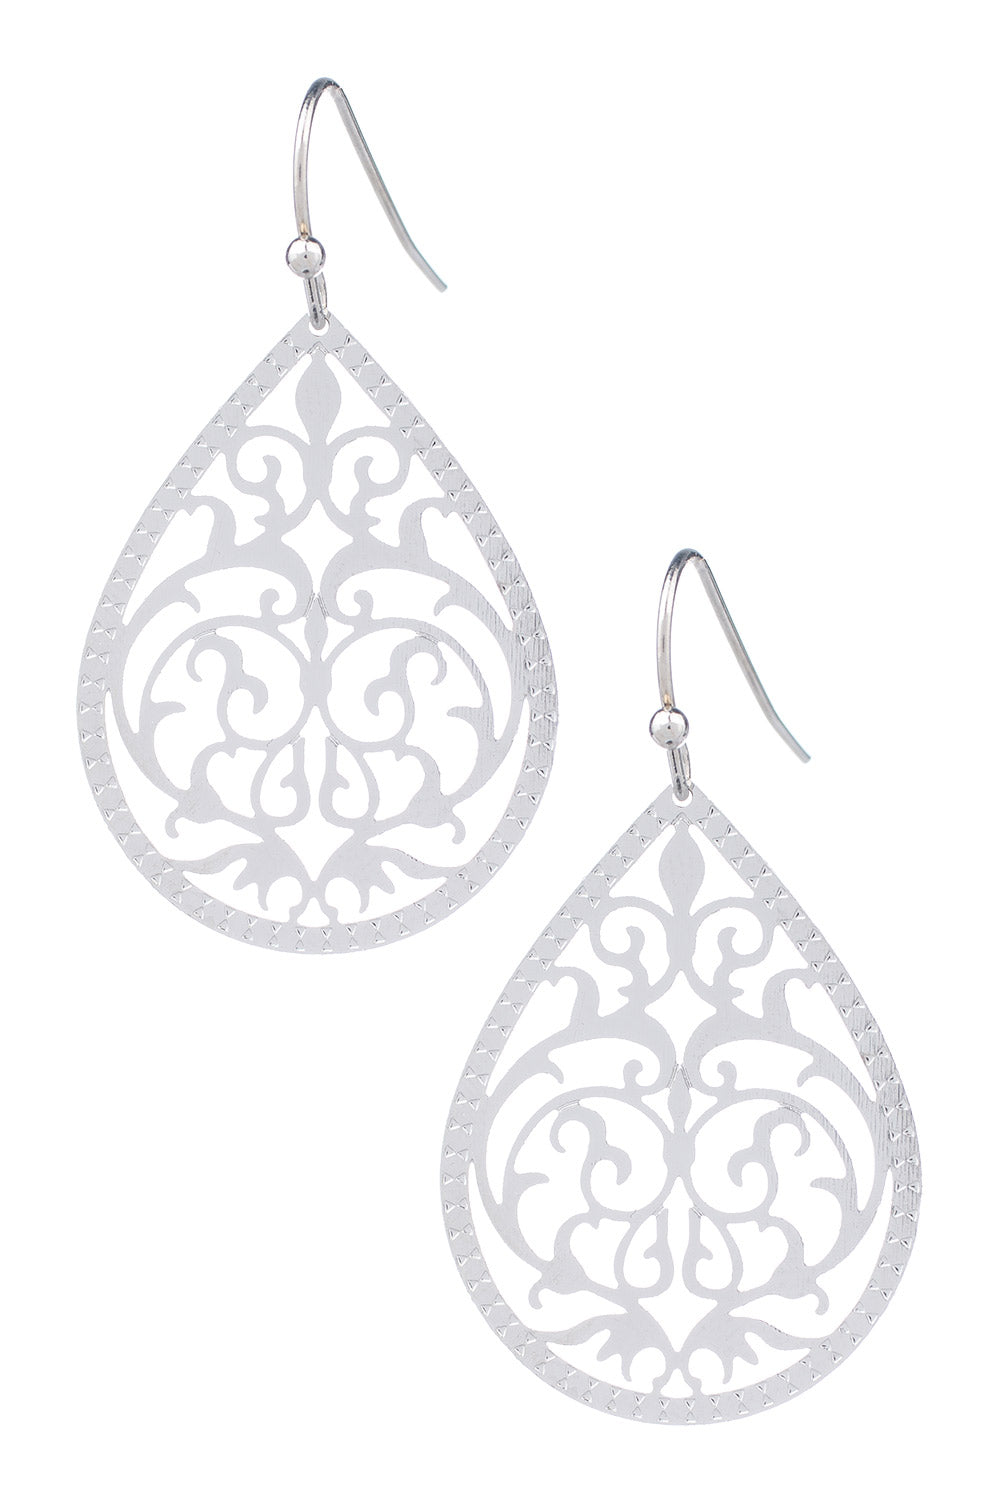 Type 2 Arabesque Earrings